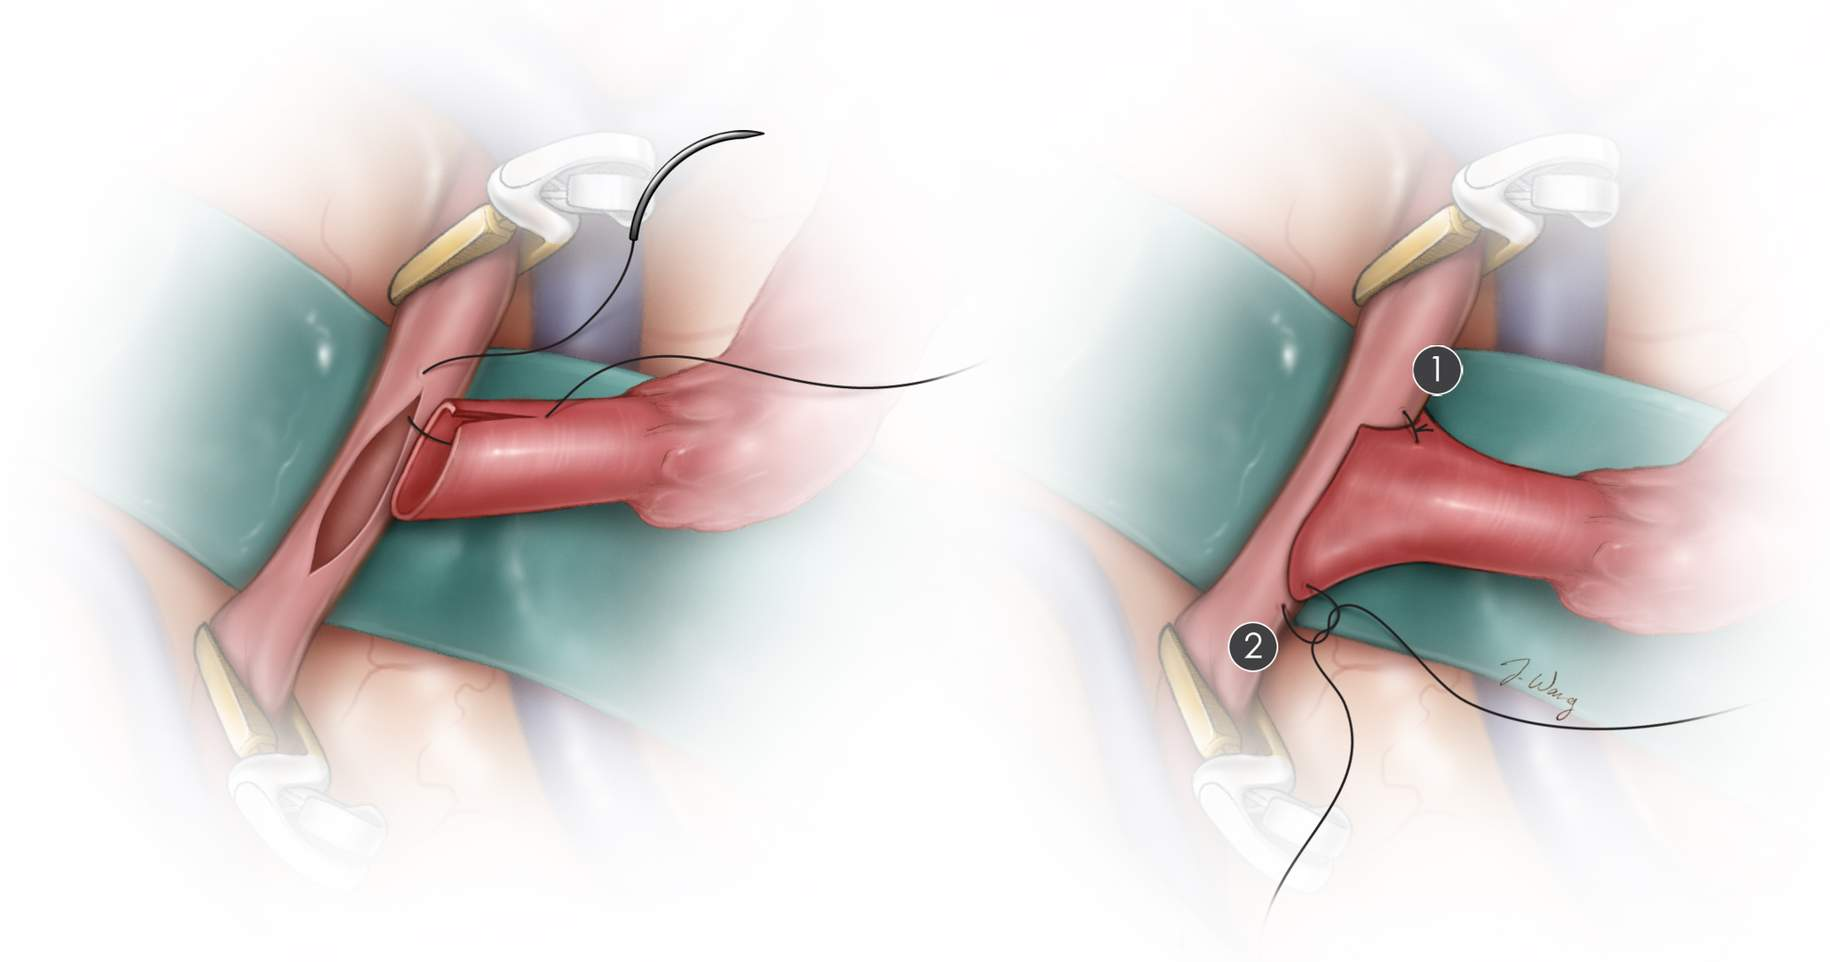 Figure 9: The initial heel and toe sutures of the anastomosis are illustrated. Using 9-0 or 10-0 nonabsorbable sutures, the heel followed by the toe of the distal end of the STA is sutured to the complementary ends of the recipient artery. The sutures are placed from an outside-to-inside direction in the STA and an inside-to-outside direction on the recipient MCA branch.